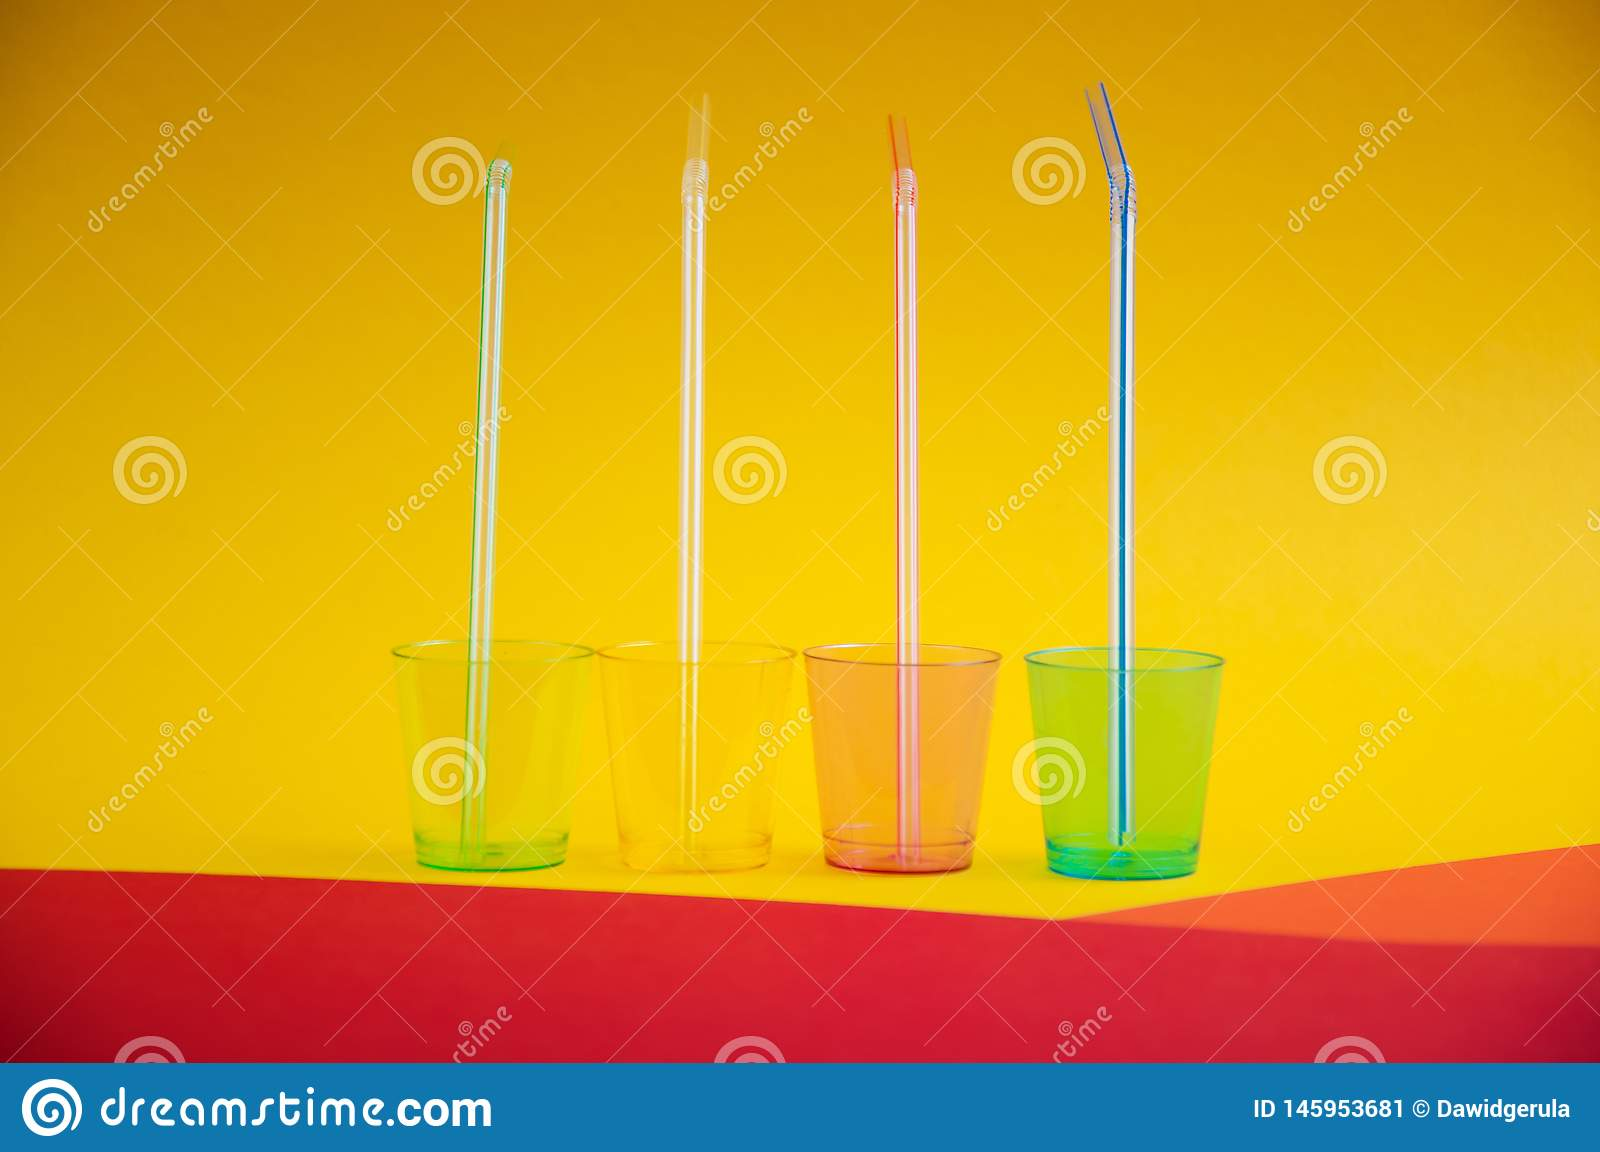 Side view of colorful empty plastic glasses with straws inside them, on multi color background